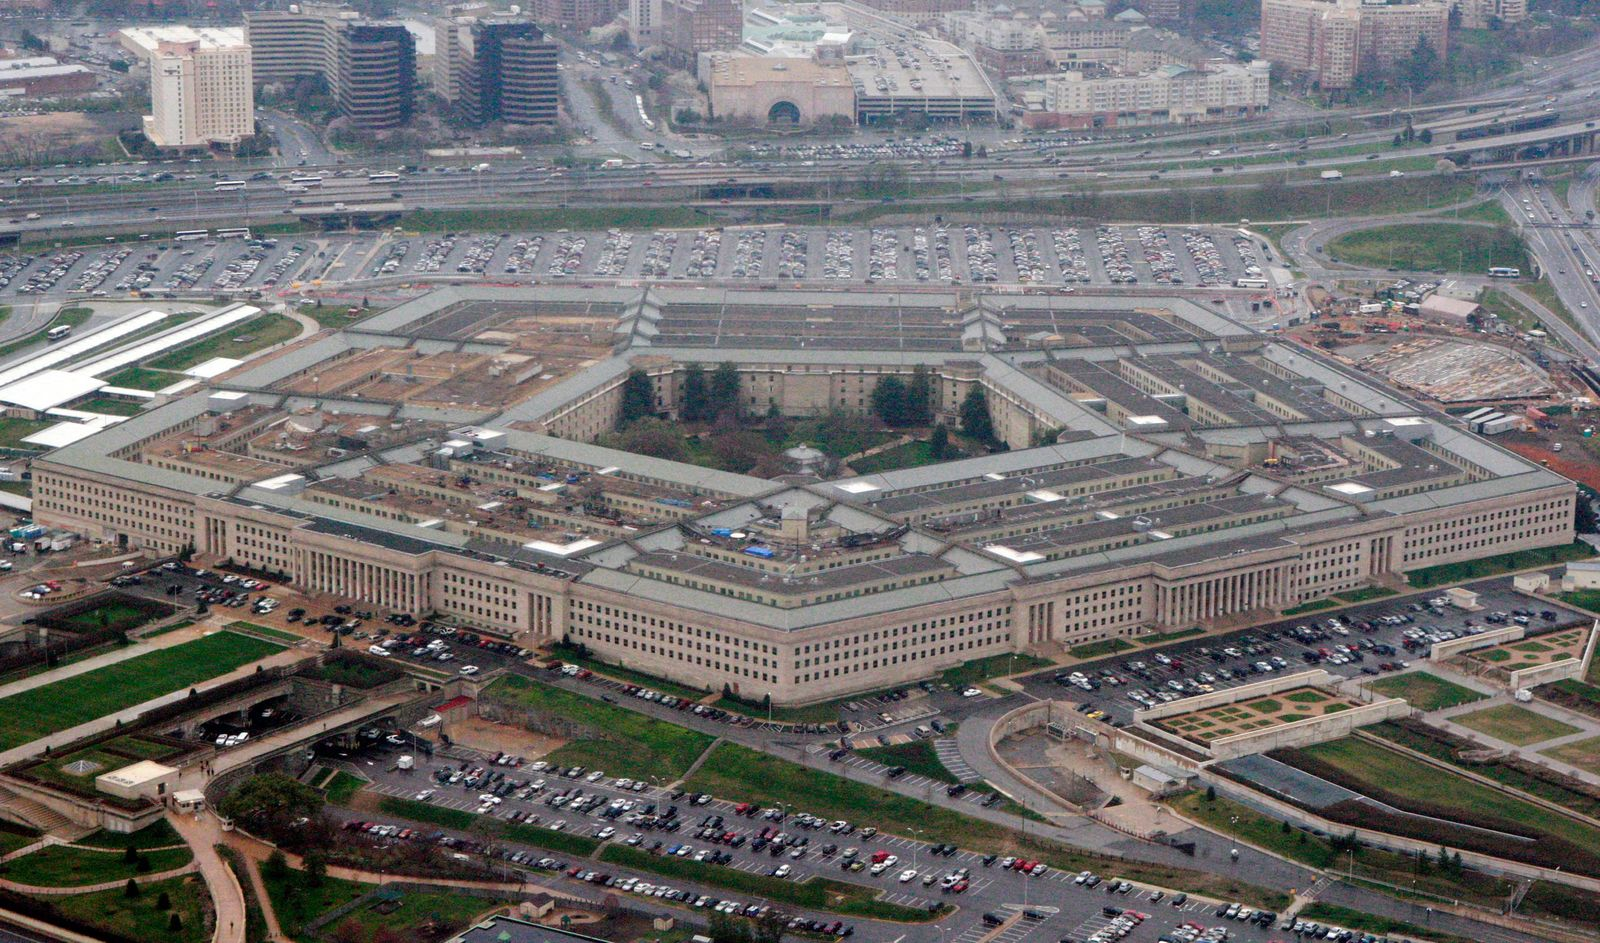 FILE - In this March 27, 2008 file photo, an aerial view of the Pentagon is seen in Washington. (AP Photo/Charles Dharapak, File)